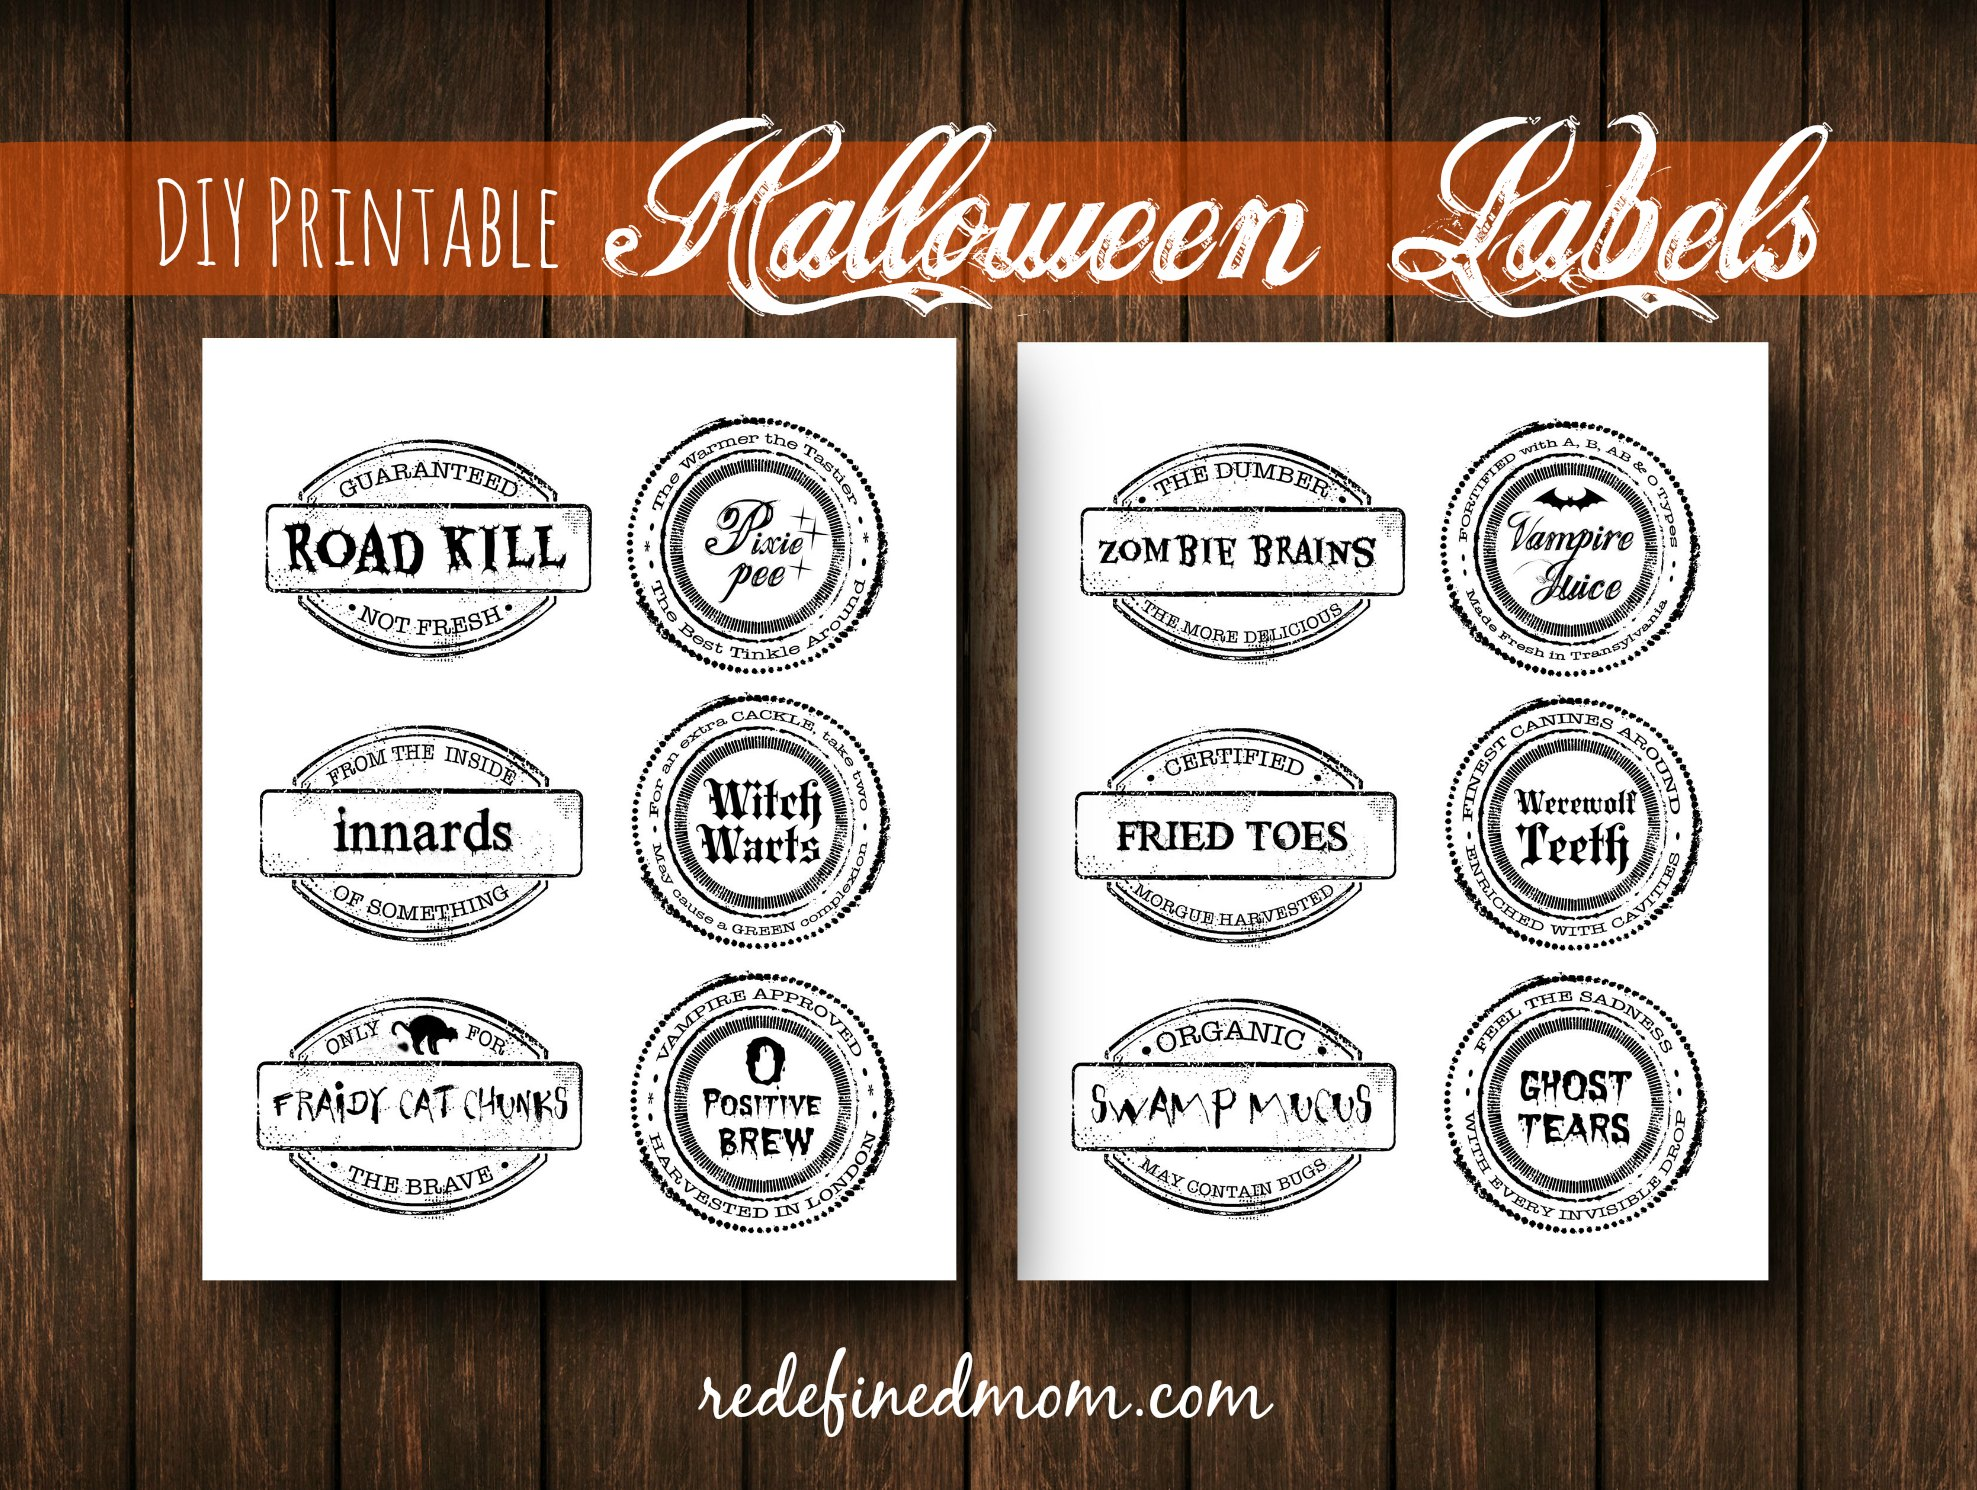 diy printable spooky halloween labels cover - Halloween Name Ideas